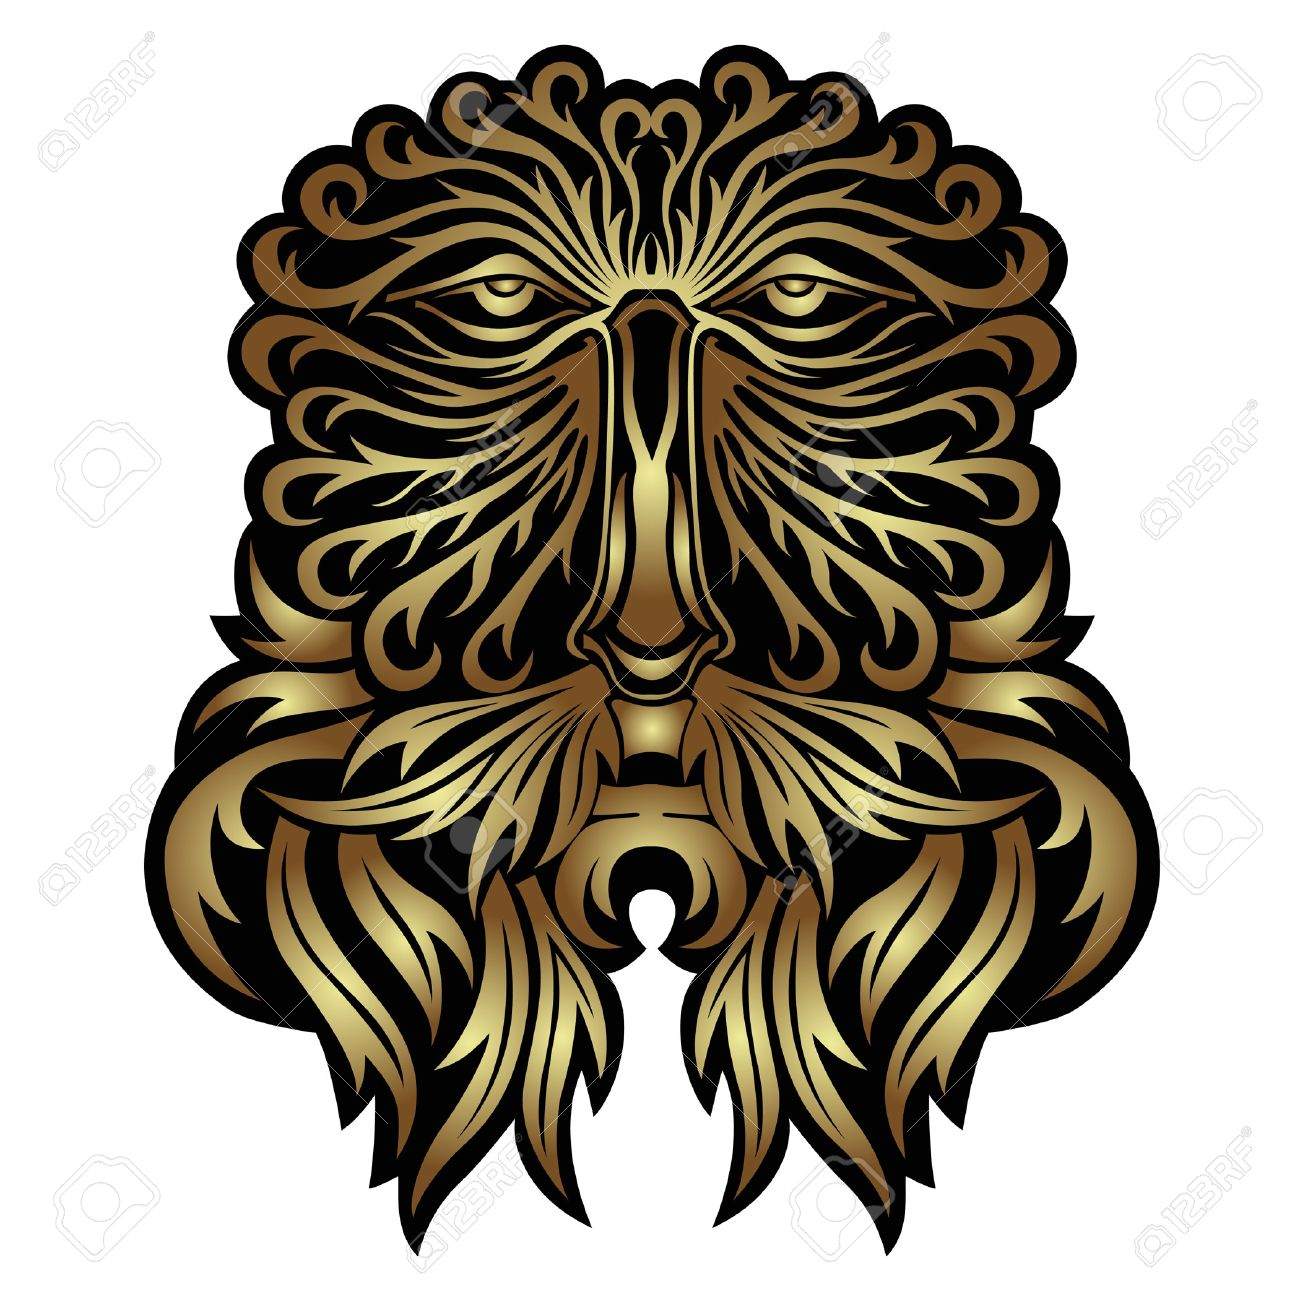 Face Forest Spirit Mask Royalty Free Cliparts, Vectors, And Stock.